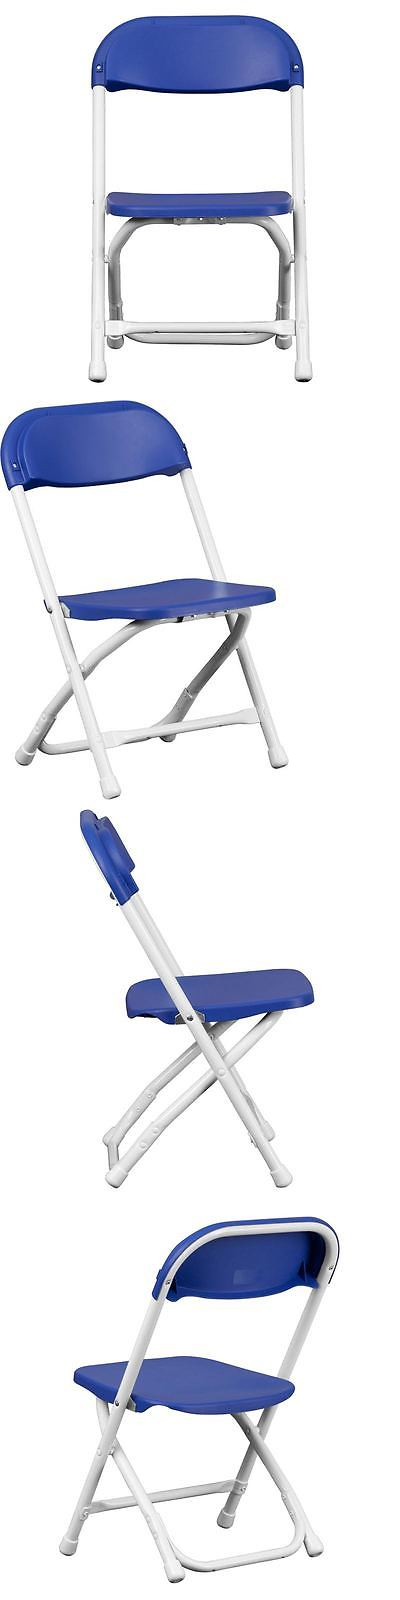 Play Tables and Chairs 66743  4 New Blue Kids Plastic Folding Chairs  Preschool Daycare ChildrenPlay Tables and Chairs 66743  4 New Blue Kids Plastic Folding  . Plastic Children S Chairs For Sale. Home Design Ideas